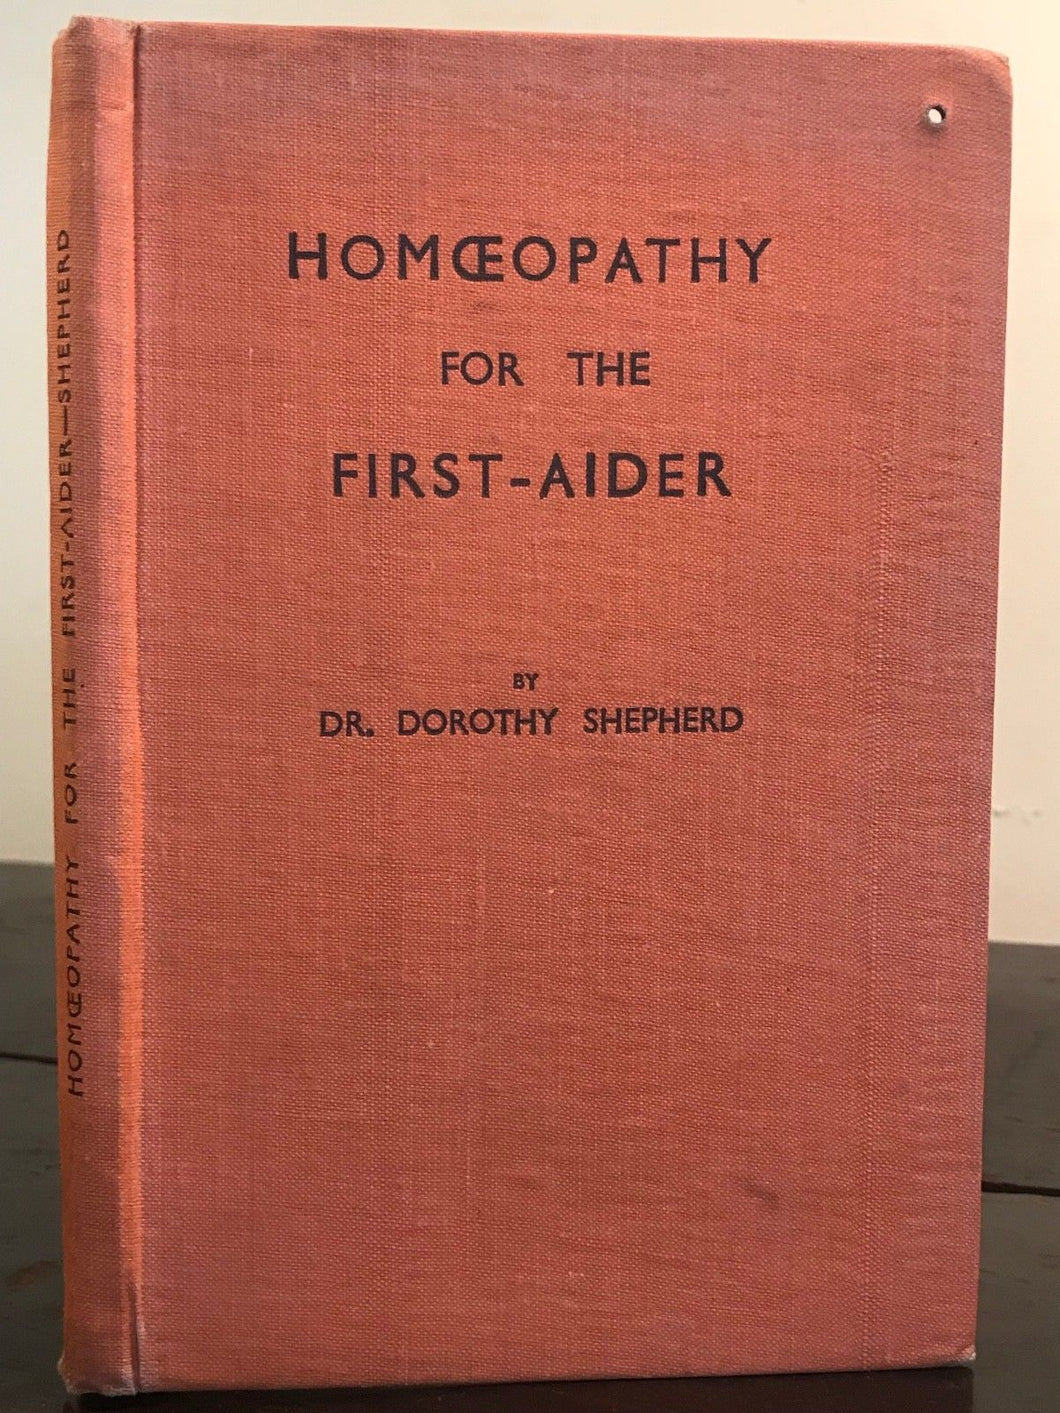 HOMOEOPATHY FOR THE FIRST-AIDER - DR. DOROTHY SHEPHERD, 1st/1st 1945 - Herbals